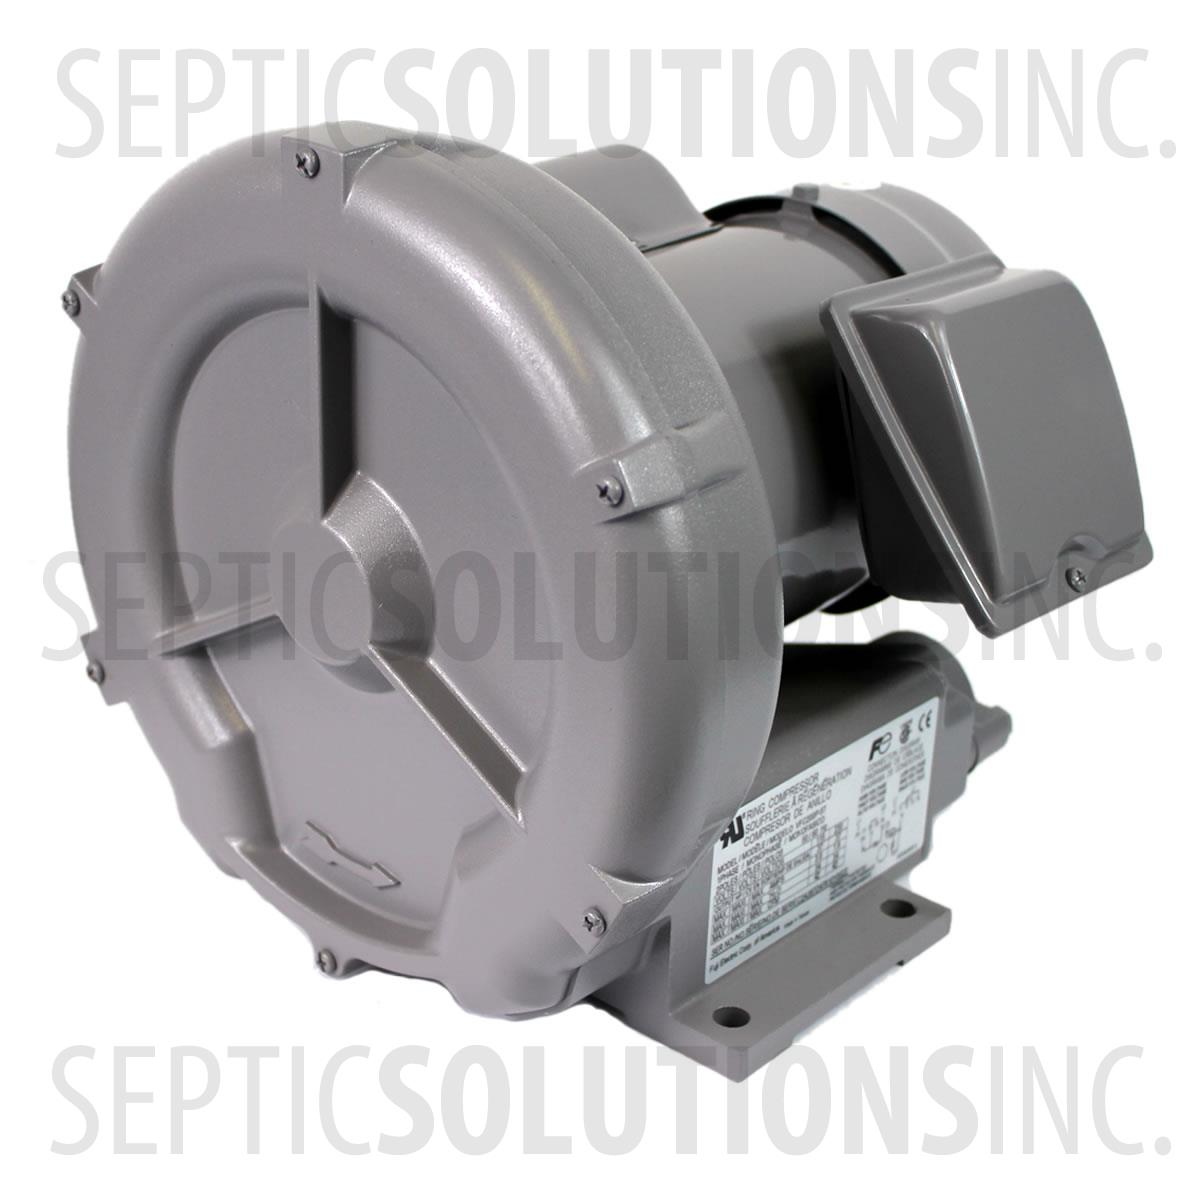 Septic Tank Blower : Fuji vfc p t hp septic solutions parts